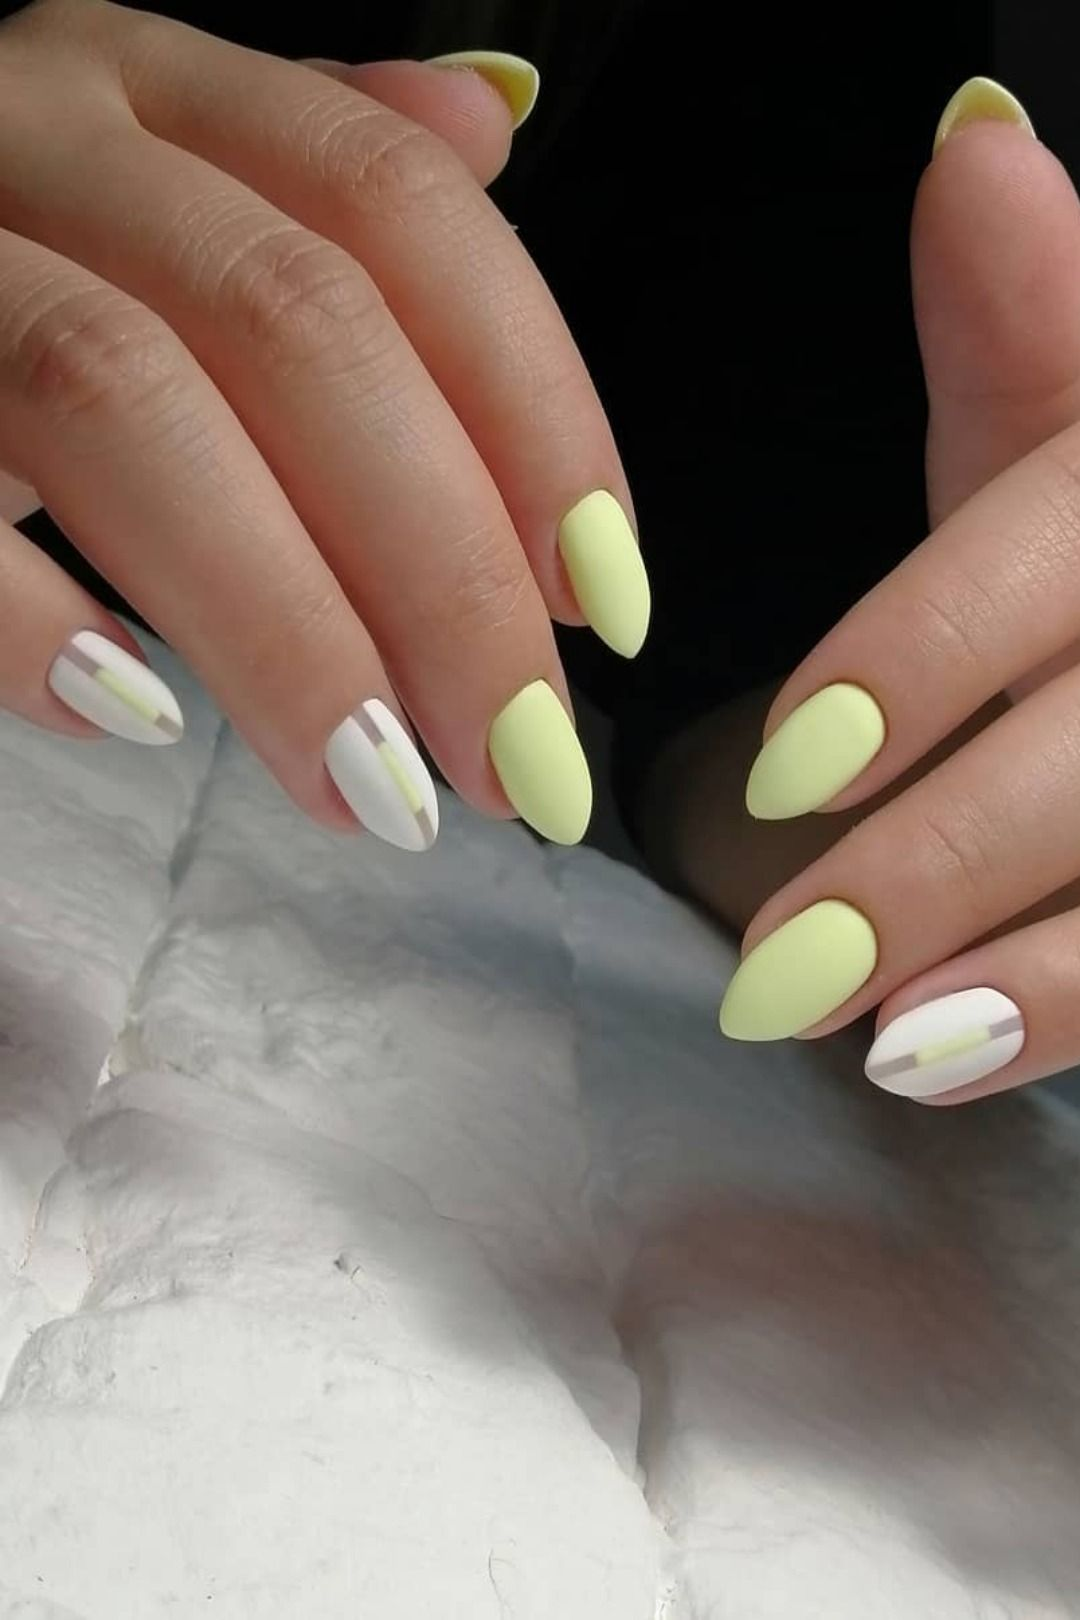 Related Products For Beauty And Makeups Nail Art Courses